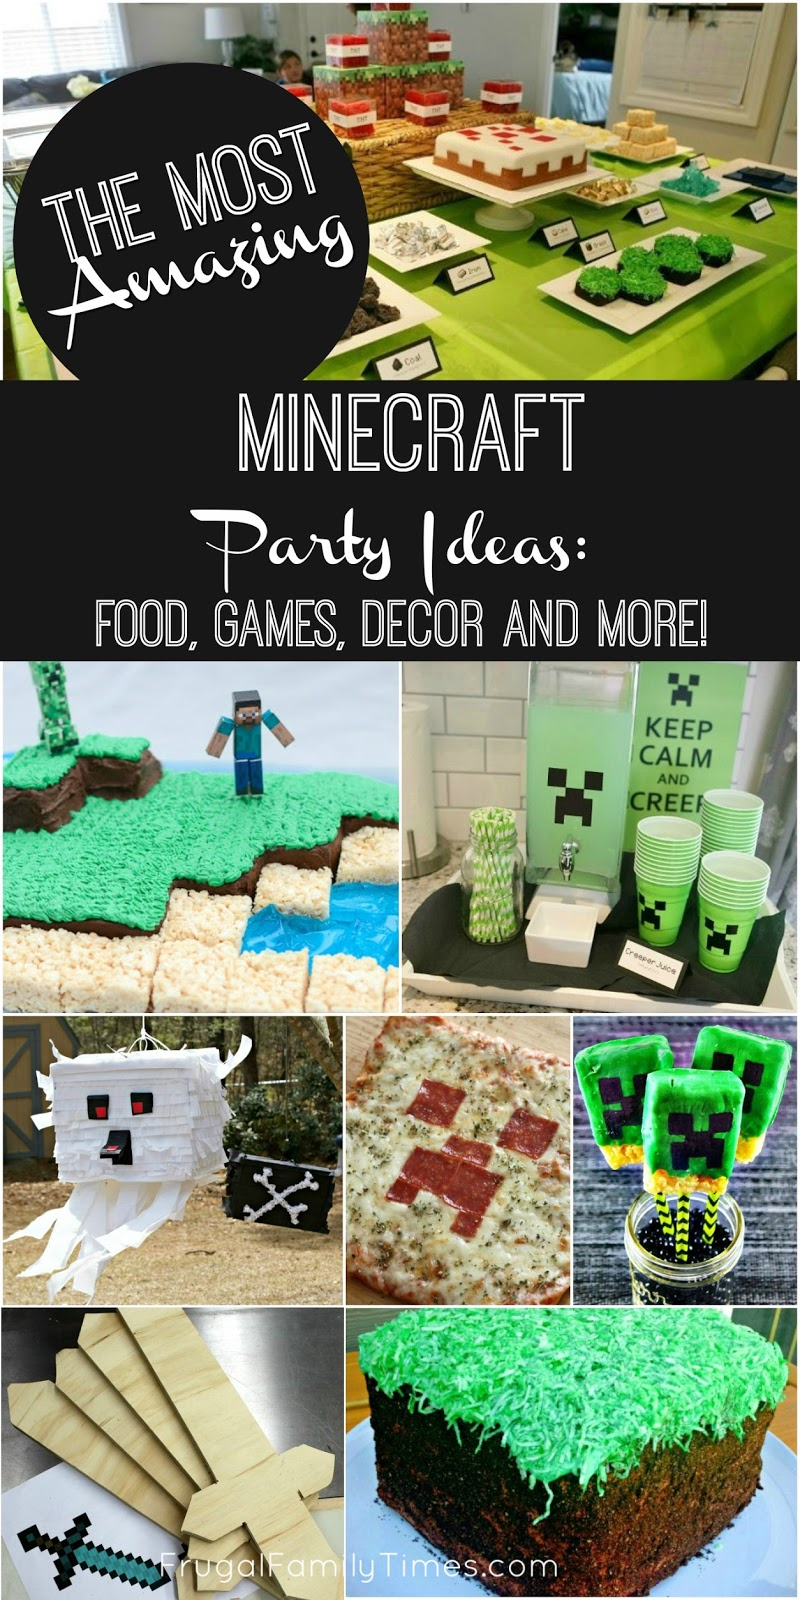 the most amazing minecraft party ideas crafts food games decor